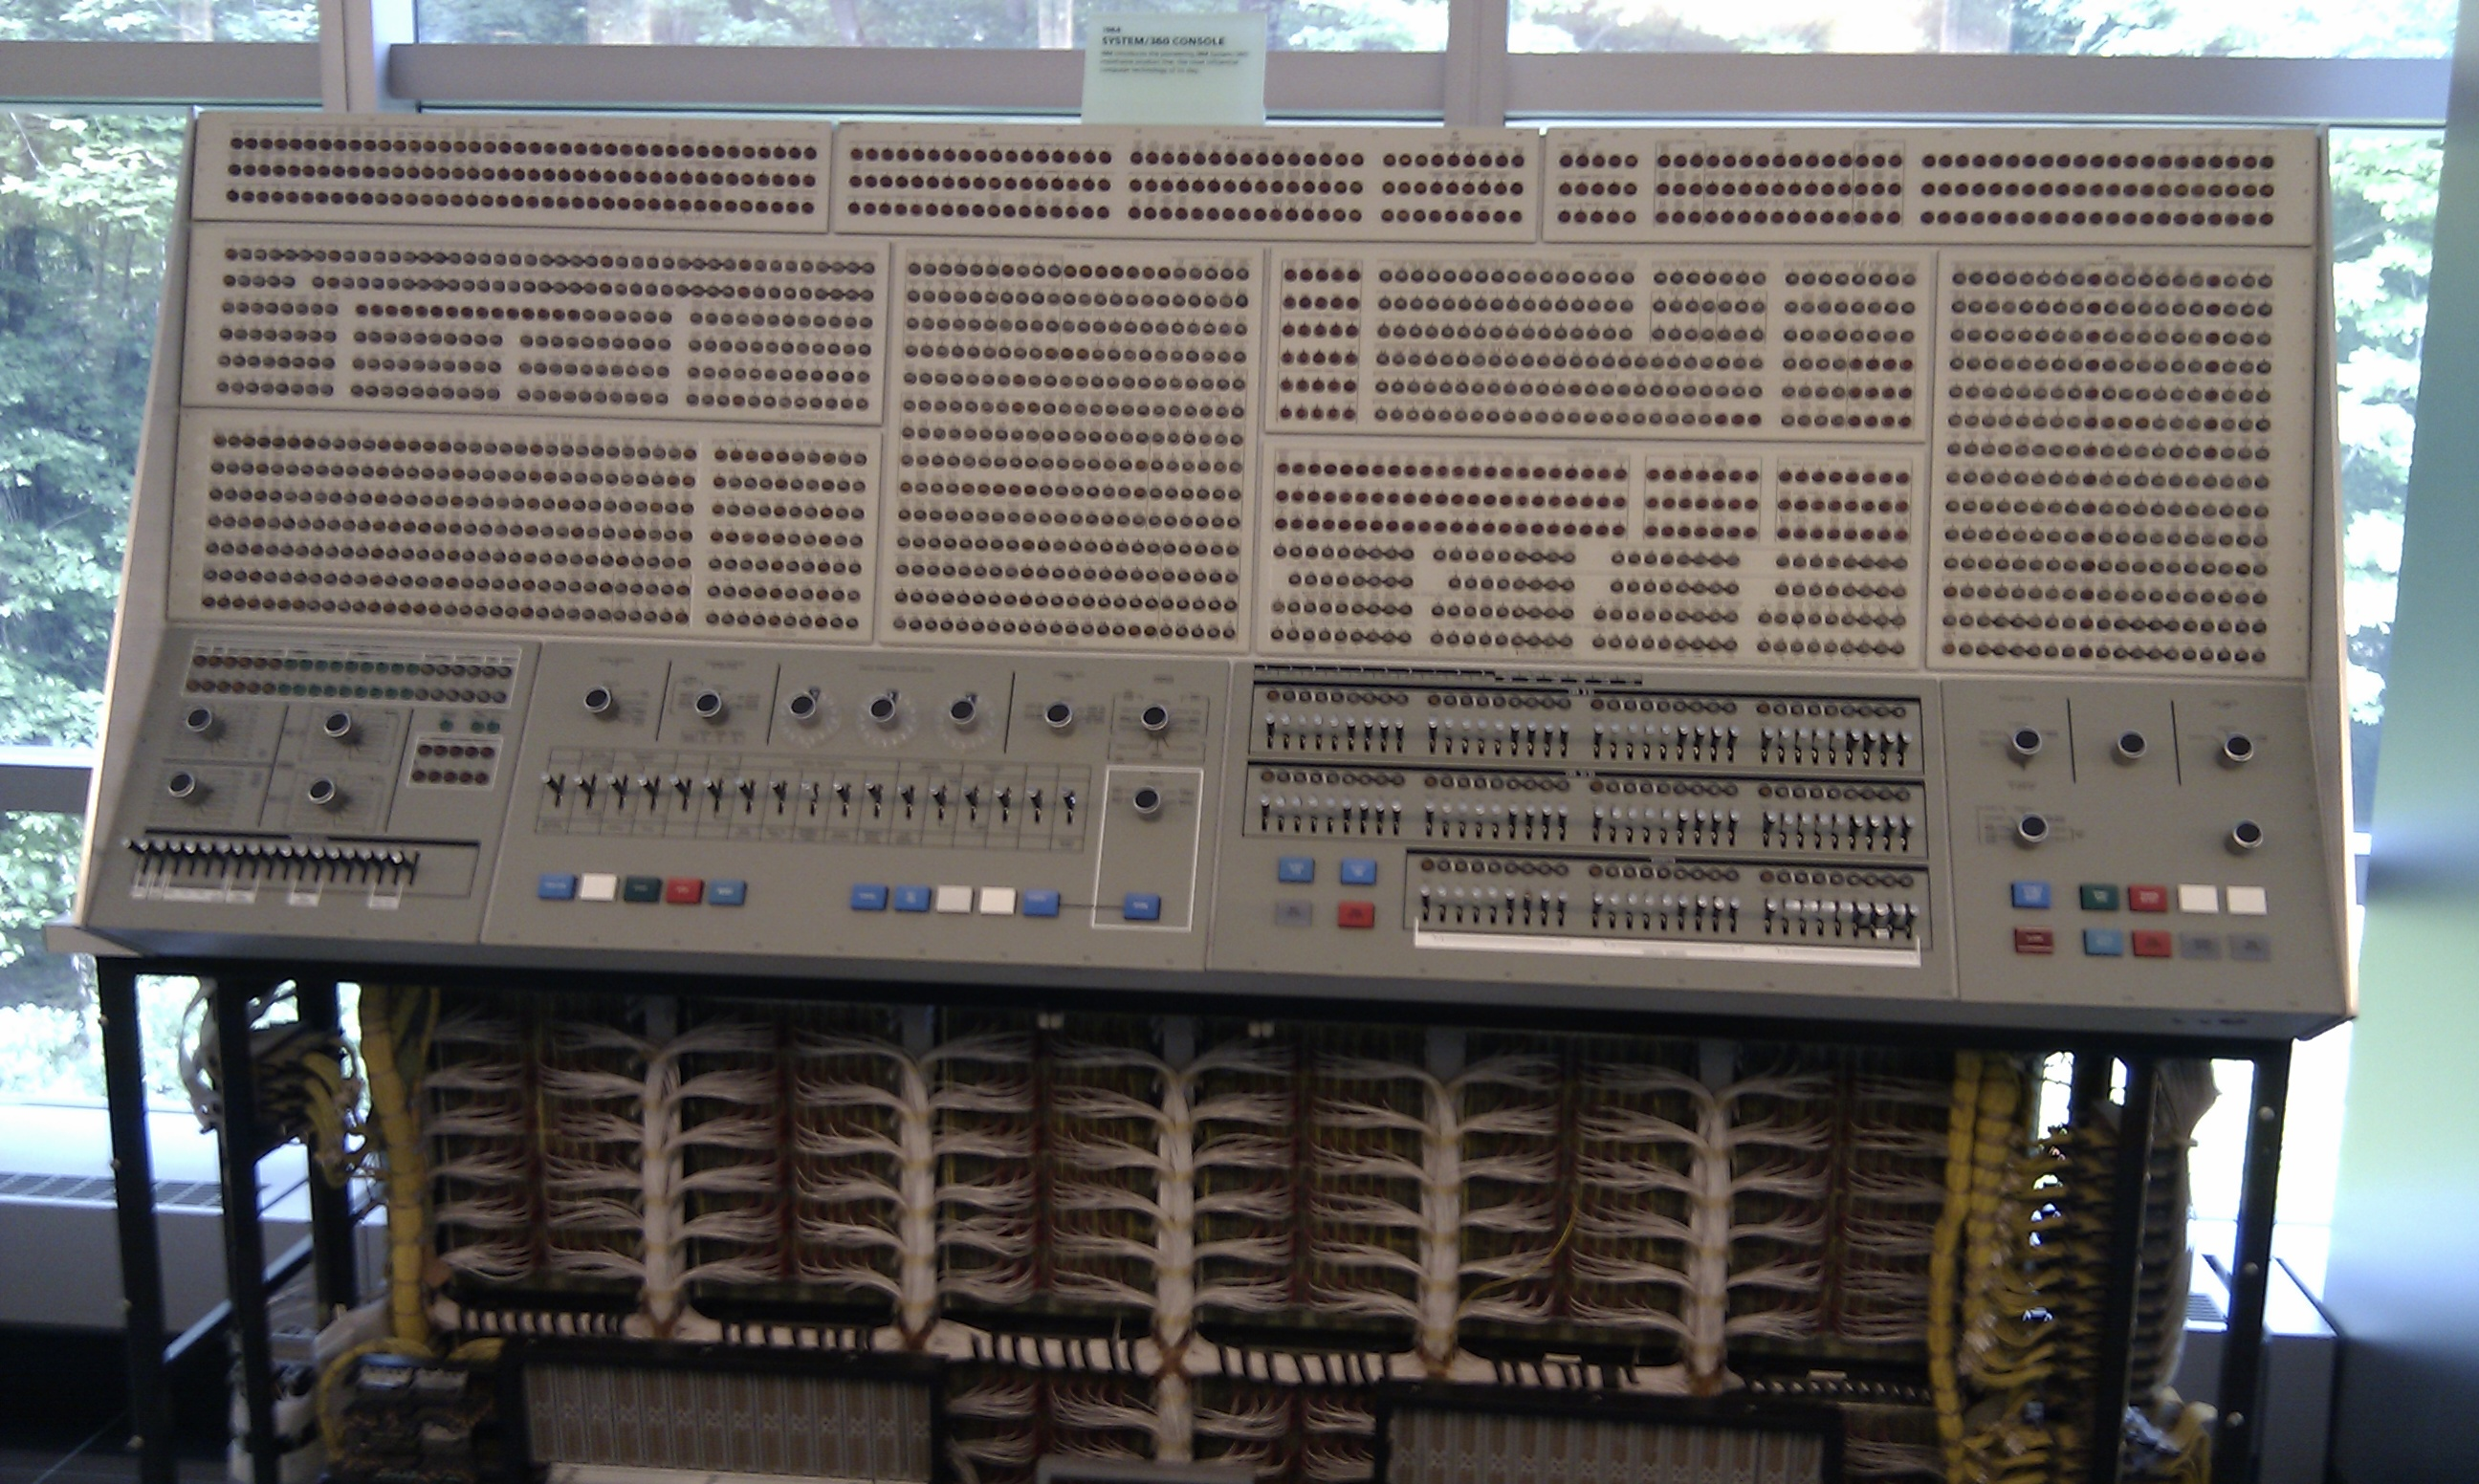 File:IBM System 360 91.mh.jpg - Wikimedia Commons